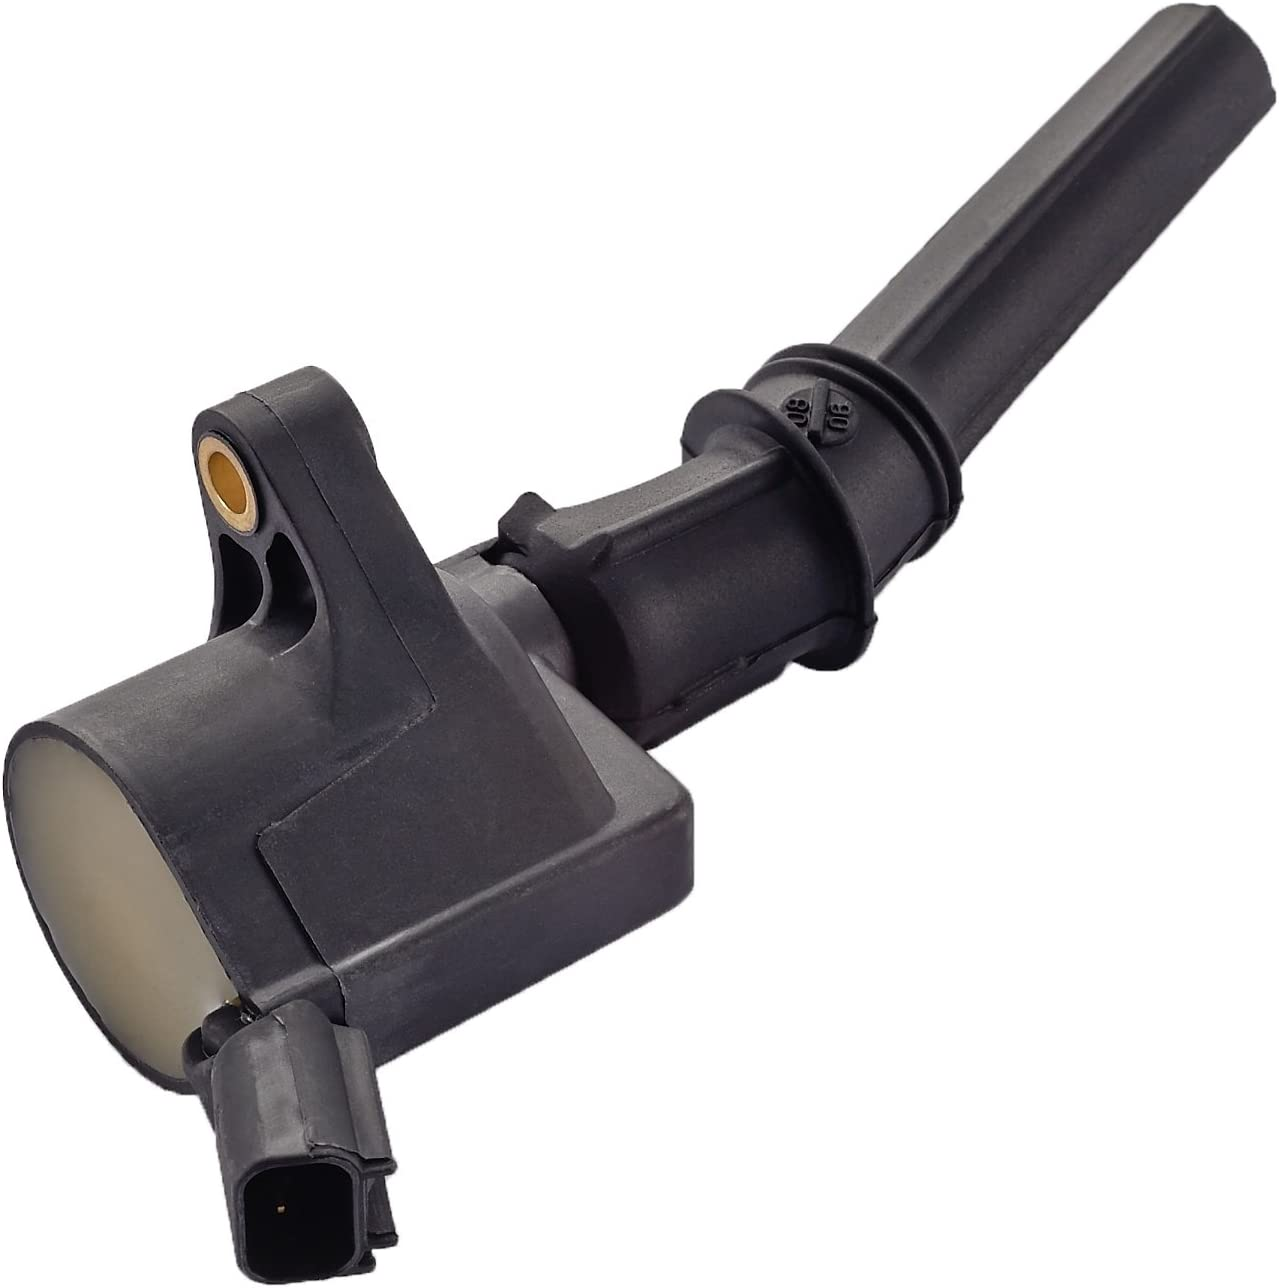 New Ignition Coil on Plug for  Ford F150 F250 Super Duty Mustang Lincoln Mercury